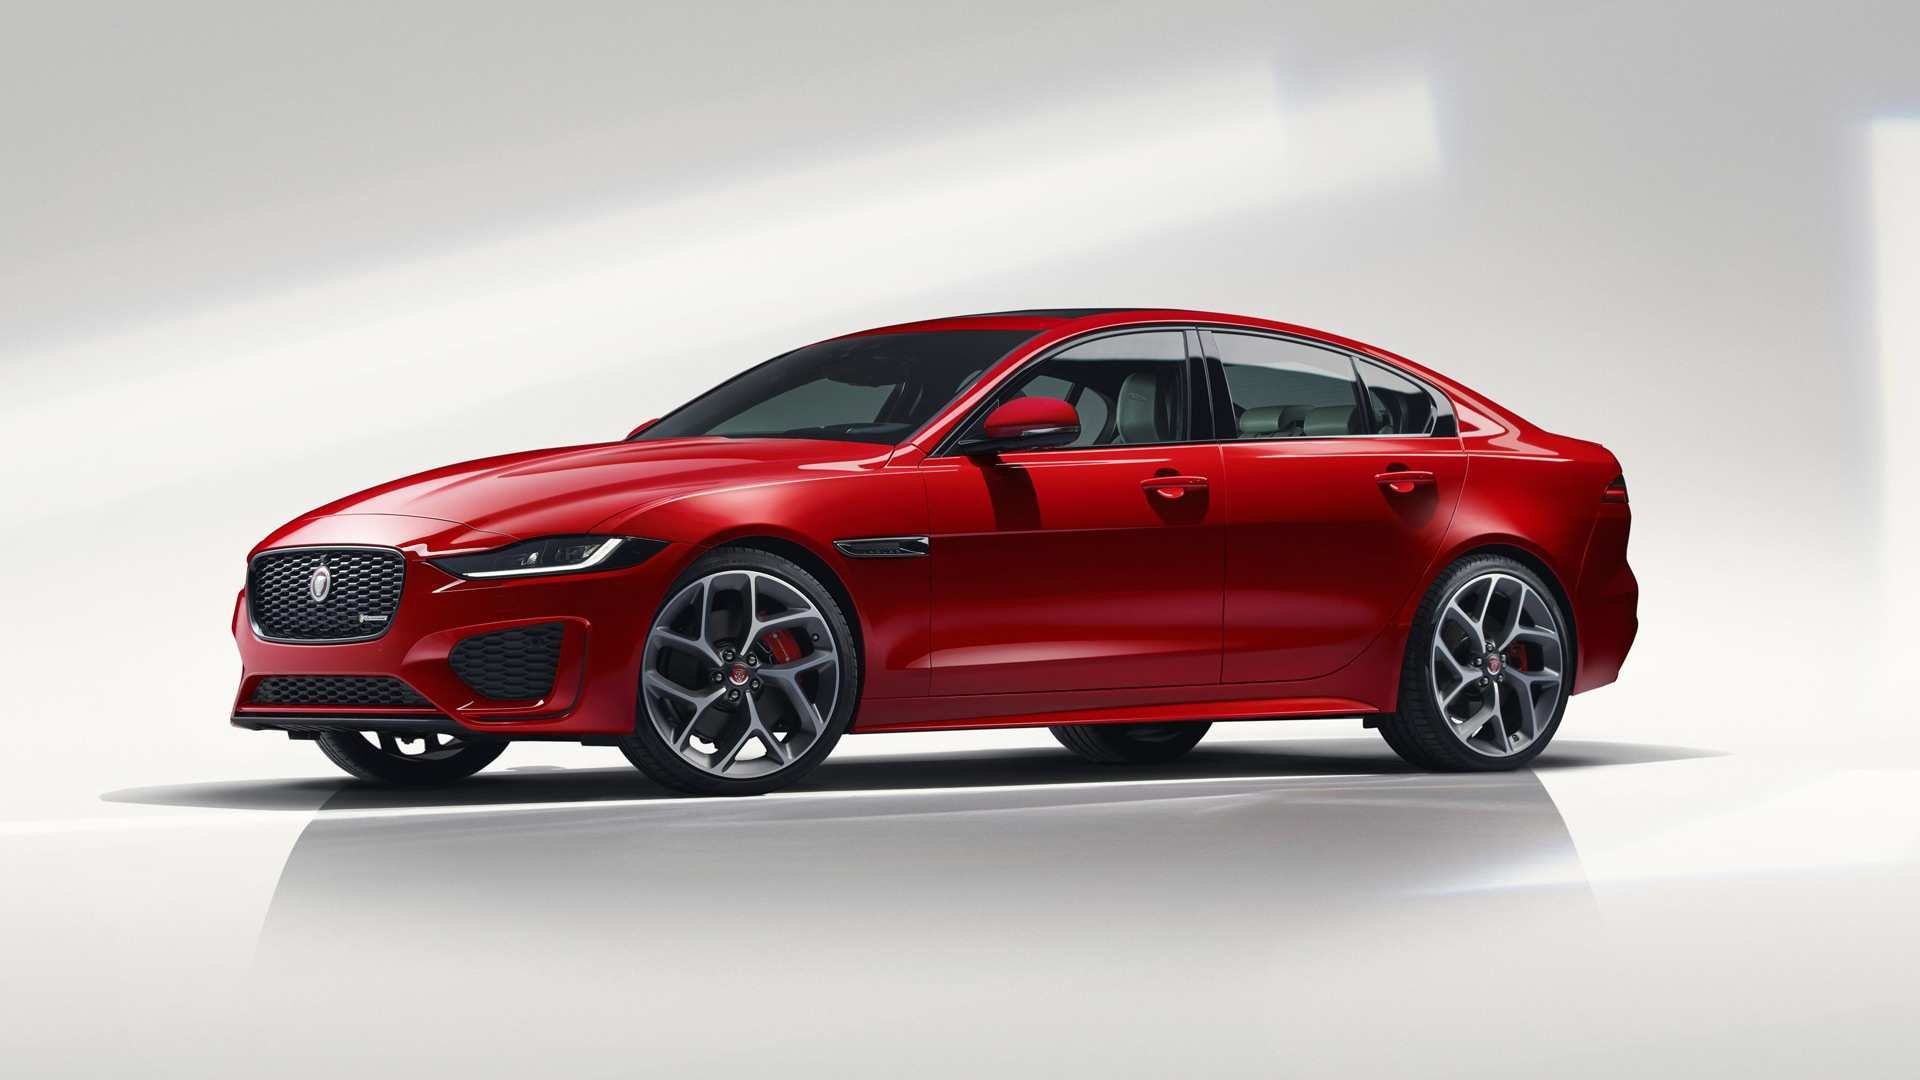 52 The 2020 Jaguar Xe Sedan Reviews